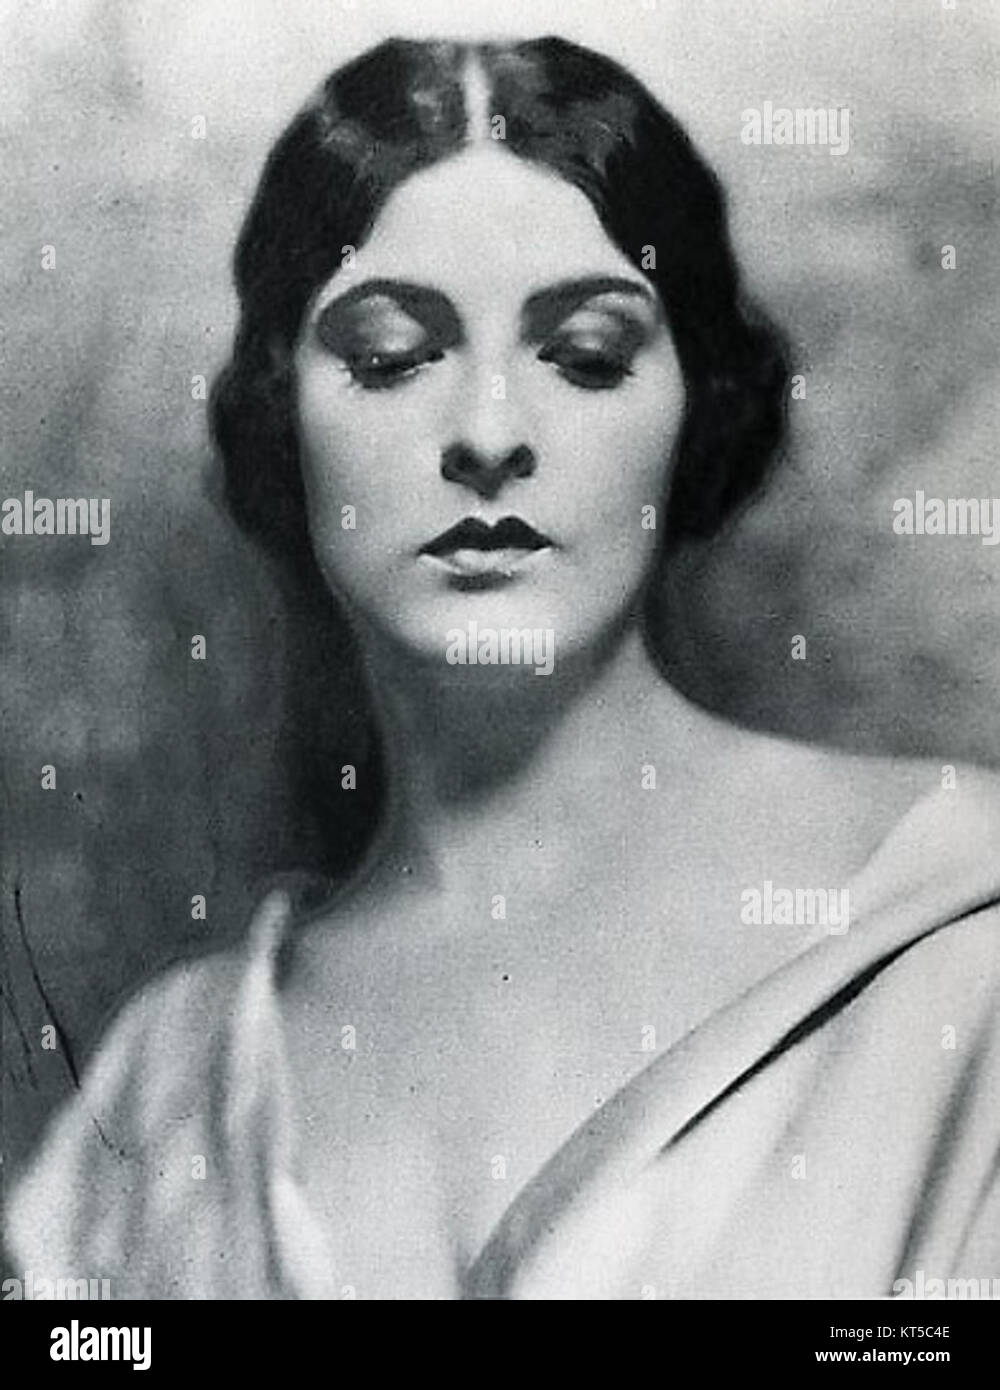 Gianna Maria Canale (1927?009)